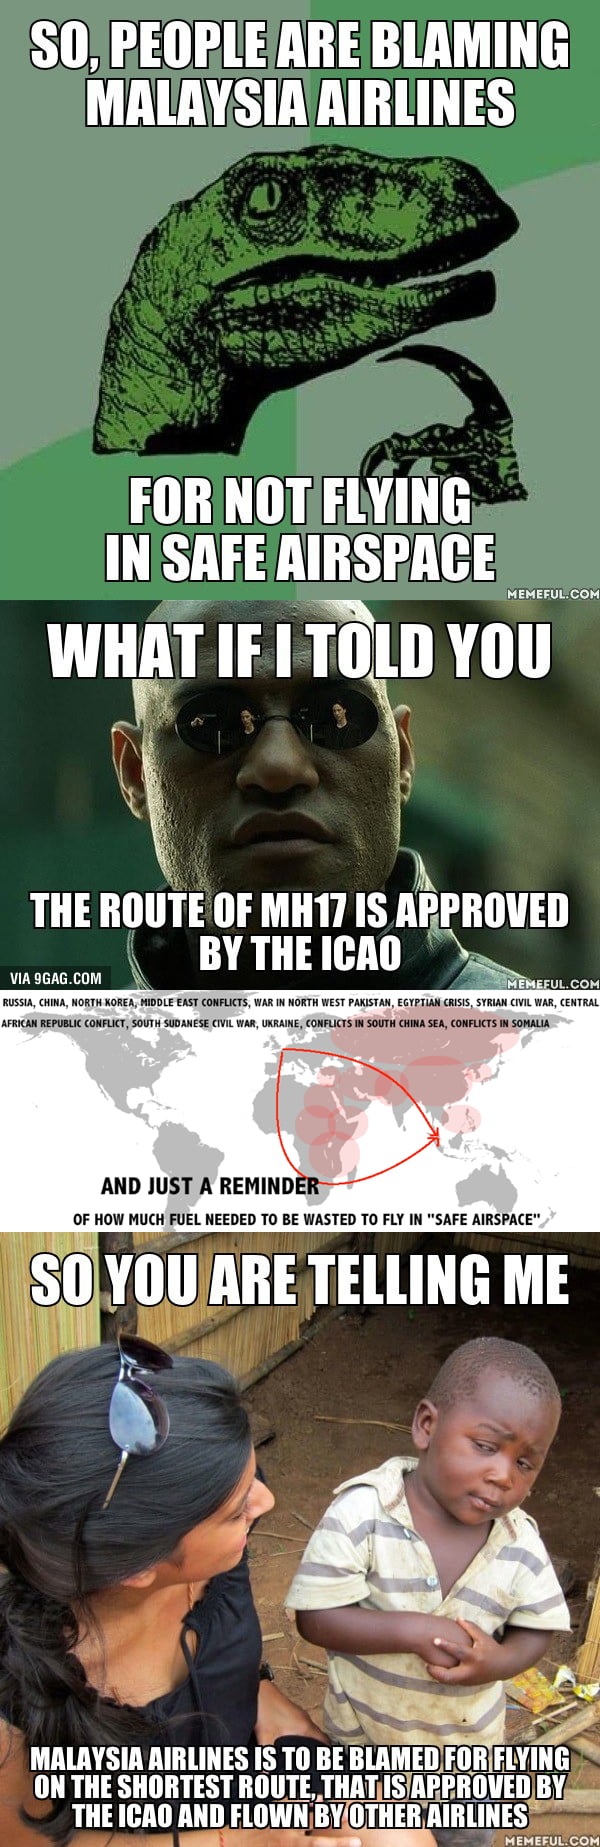 My thoughts when people blames MH17 for flying above Ukraine as if Malaysia Airlines has done something wrong